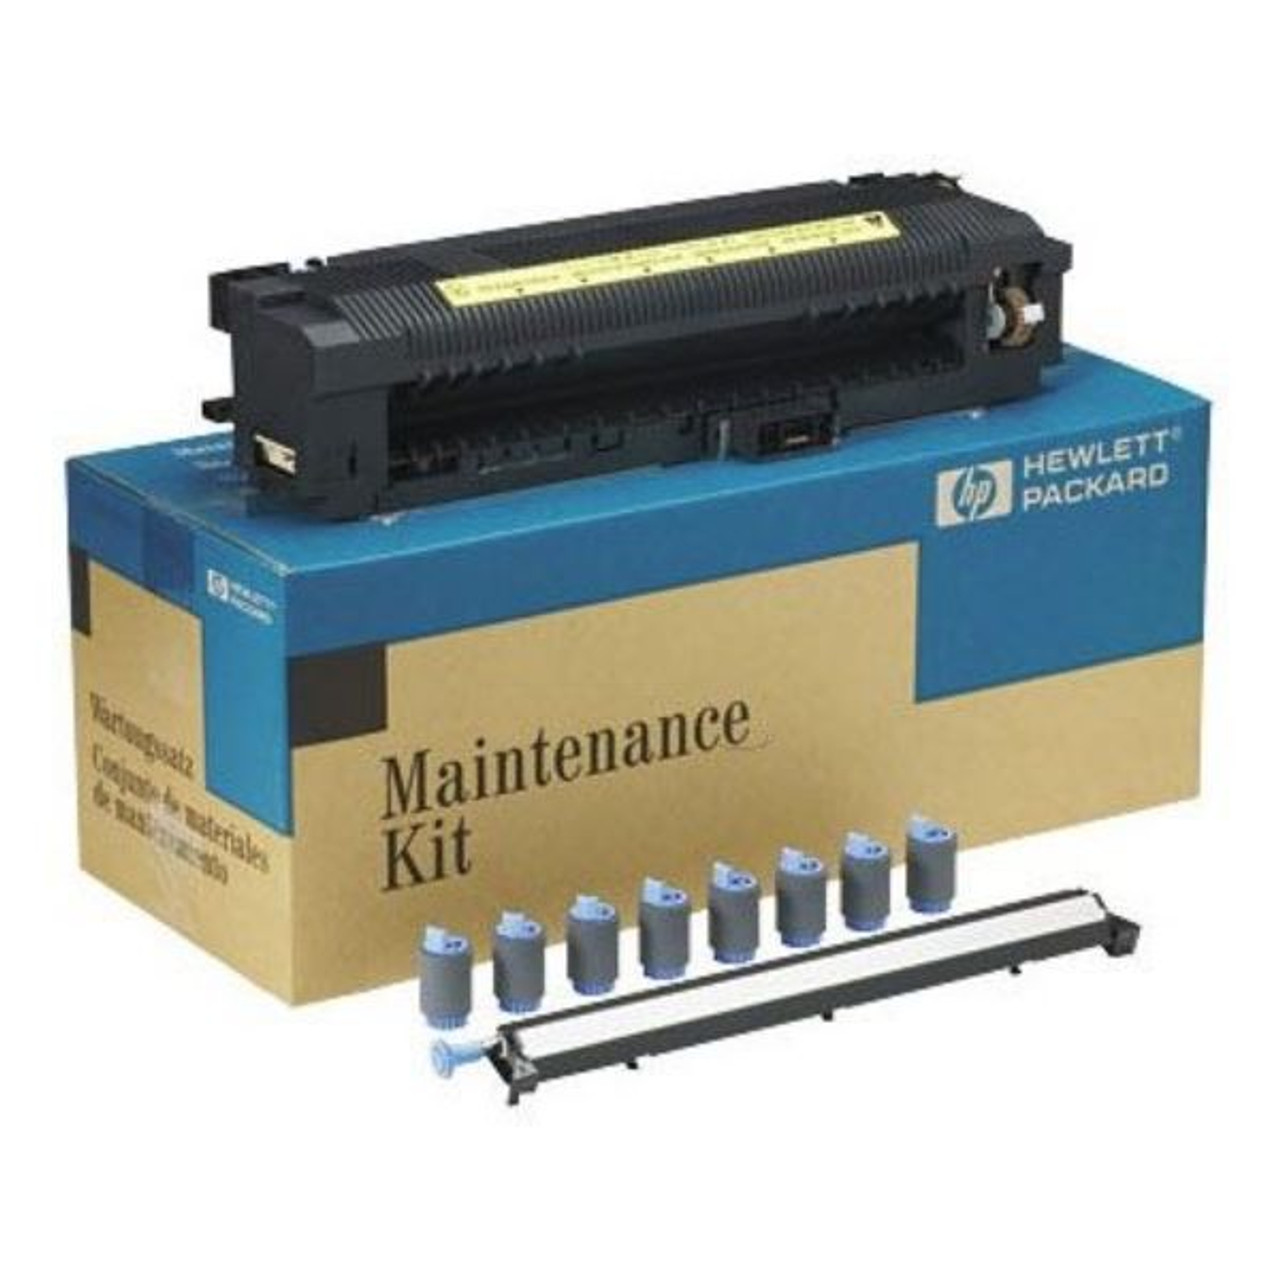 HP 8150 Maintenance Kit